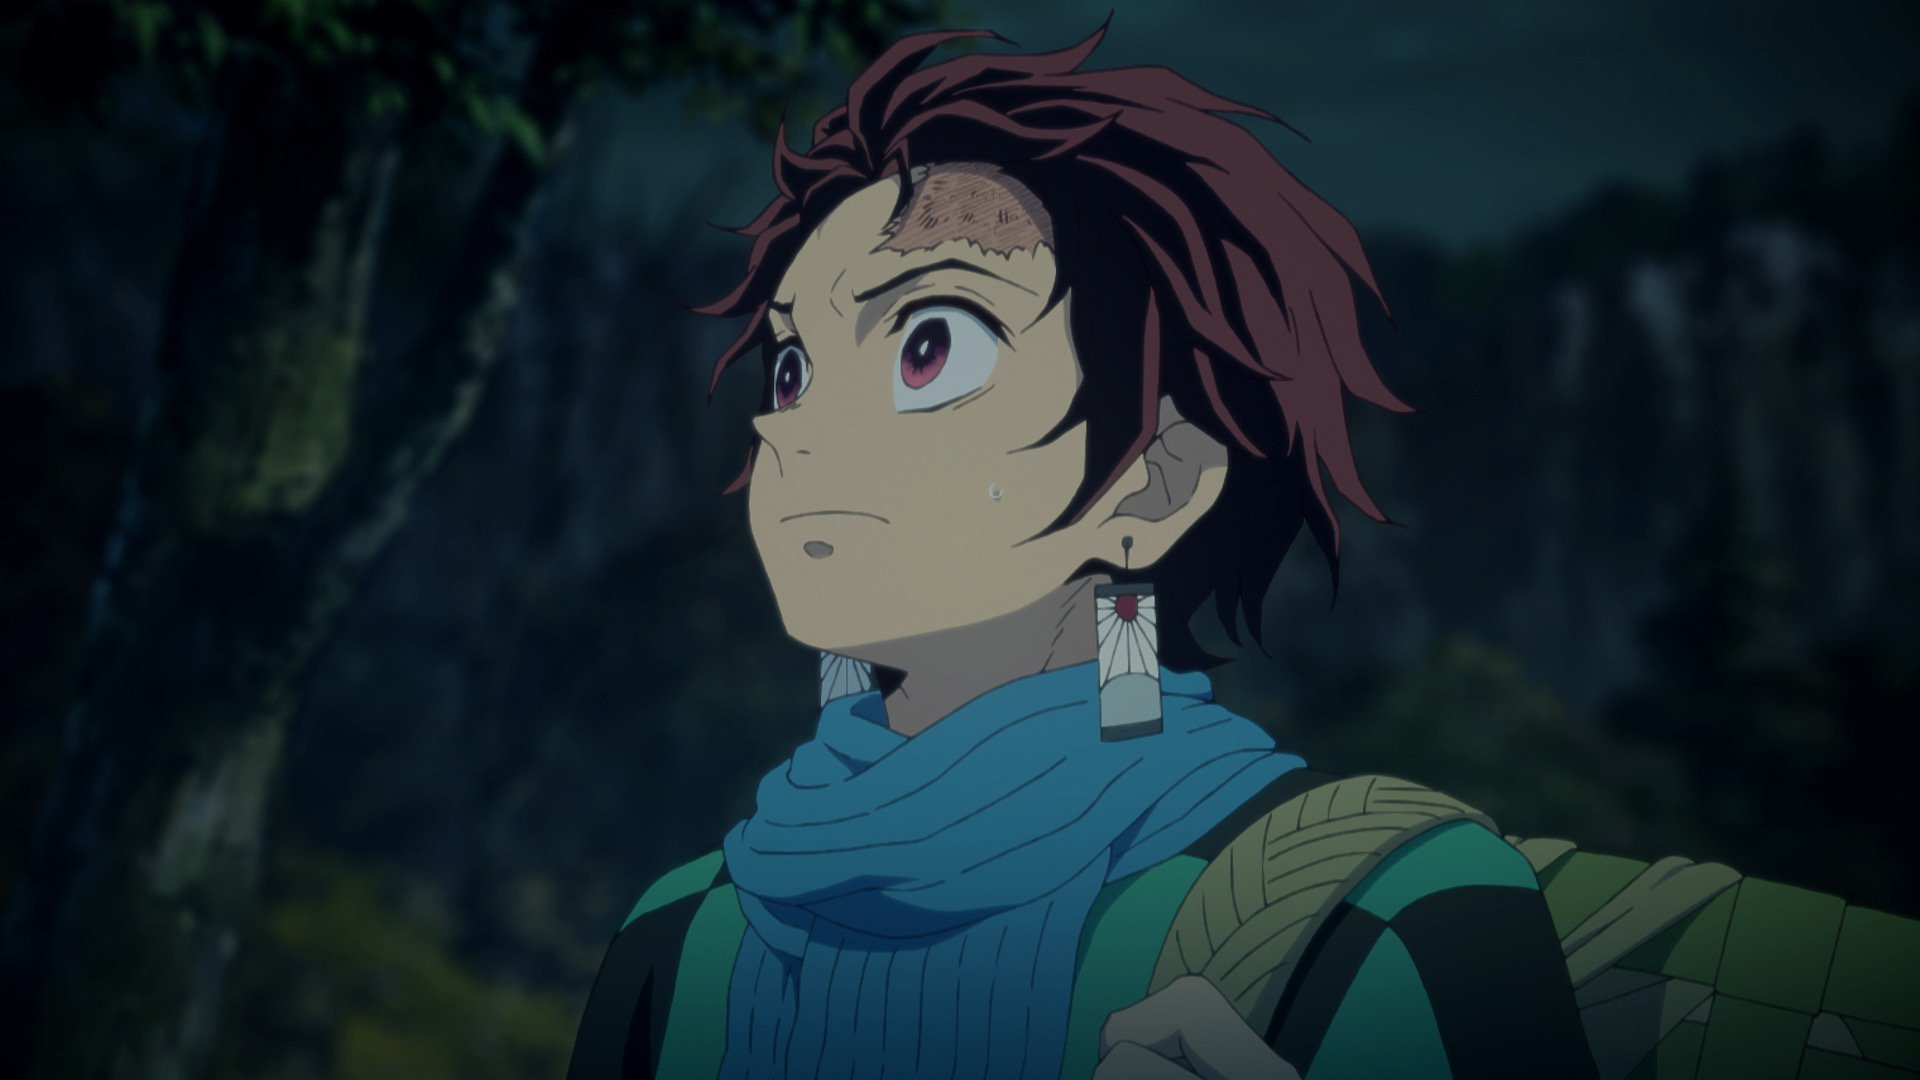 Kimetsu no Yaiba: Demon Slayer Episode 2